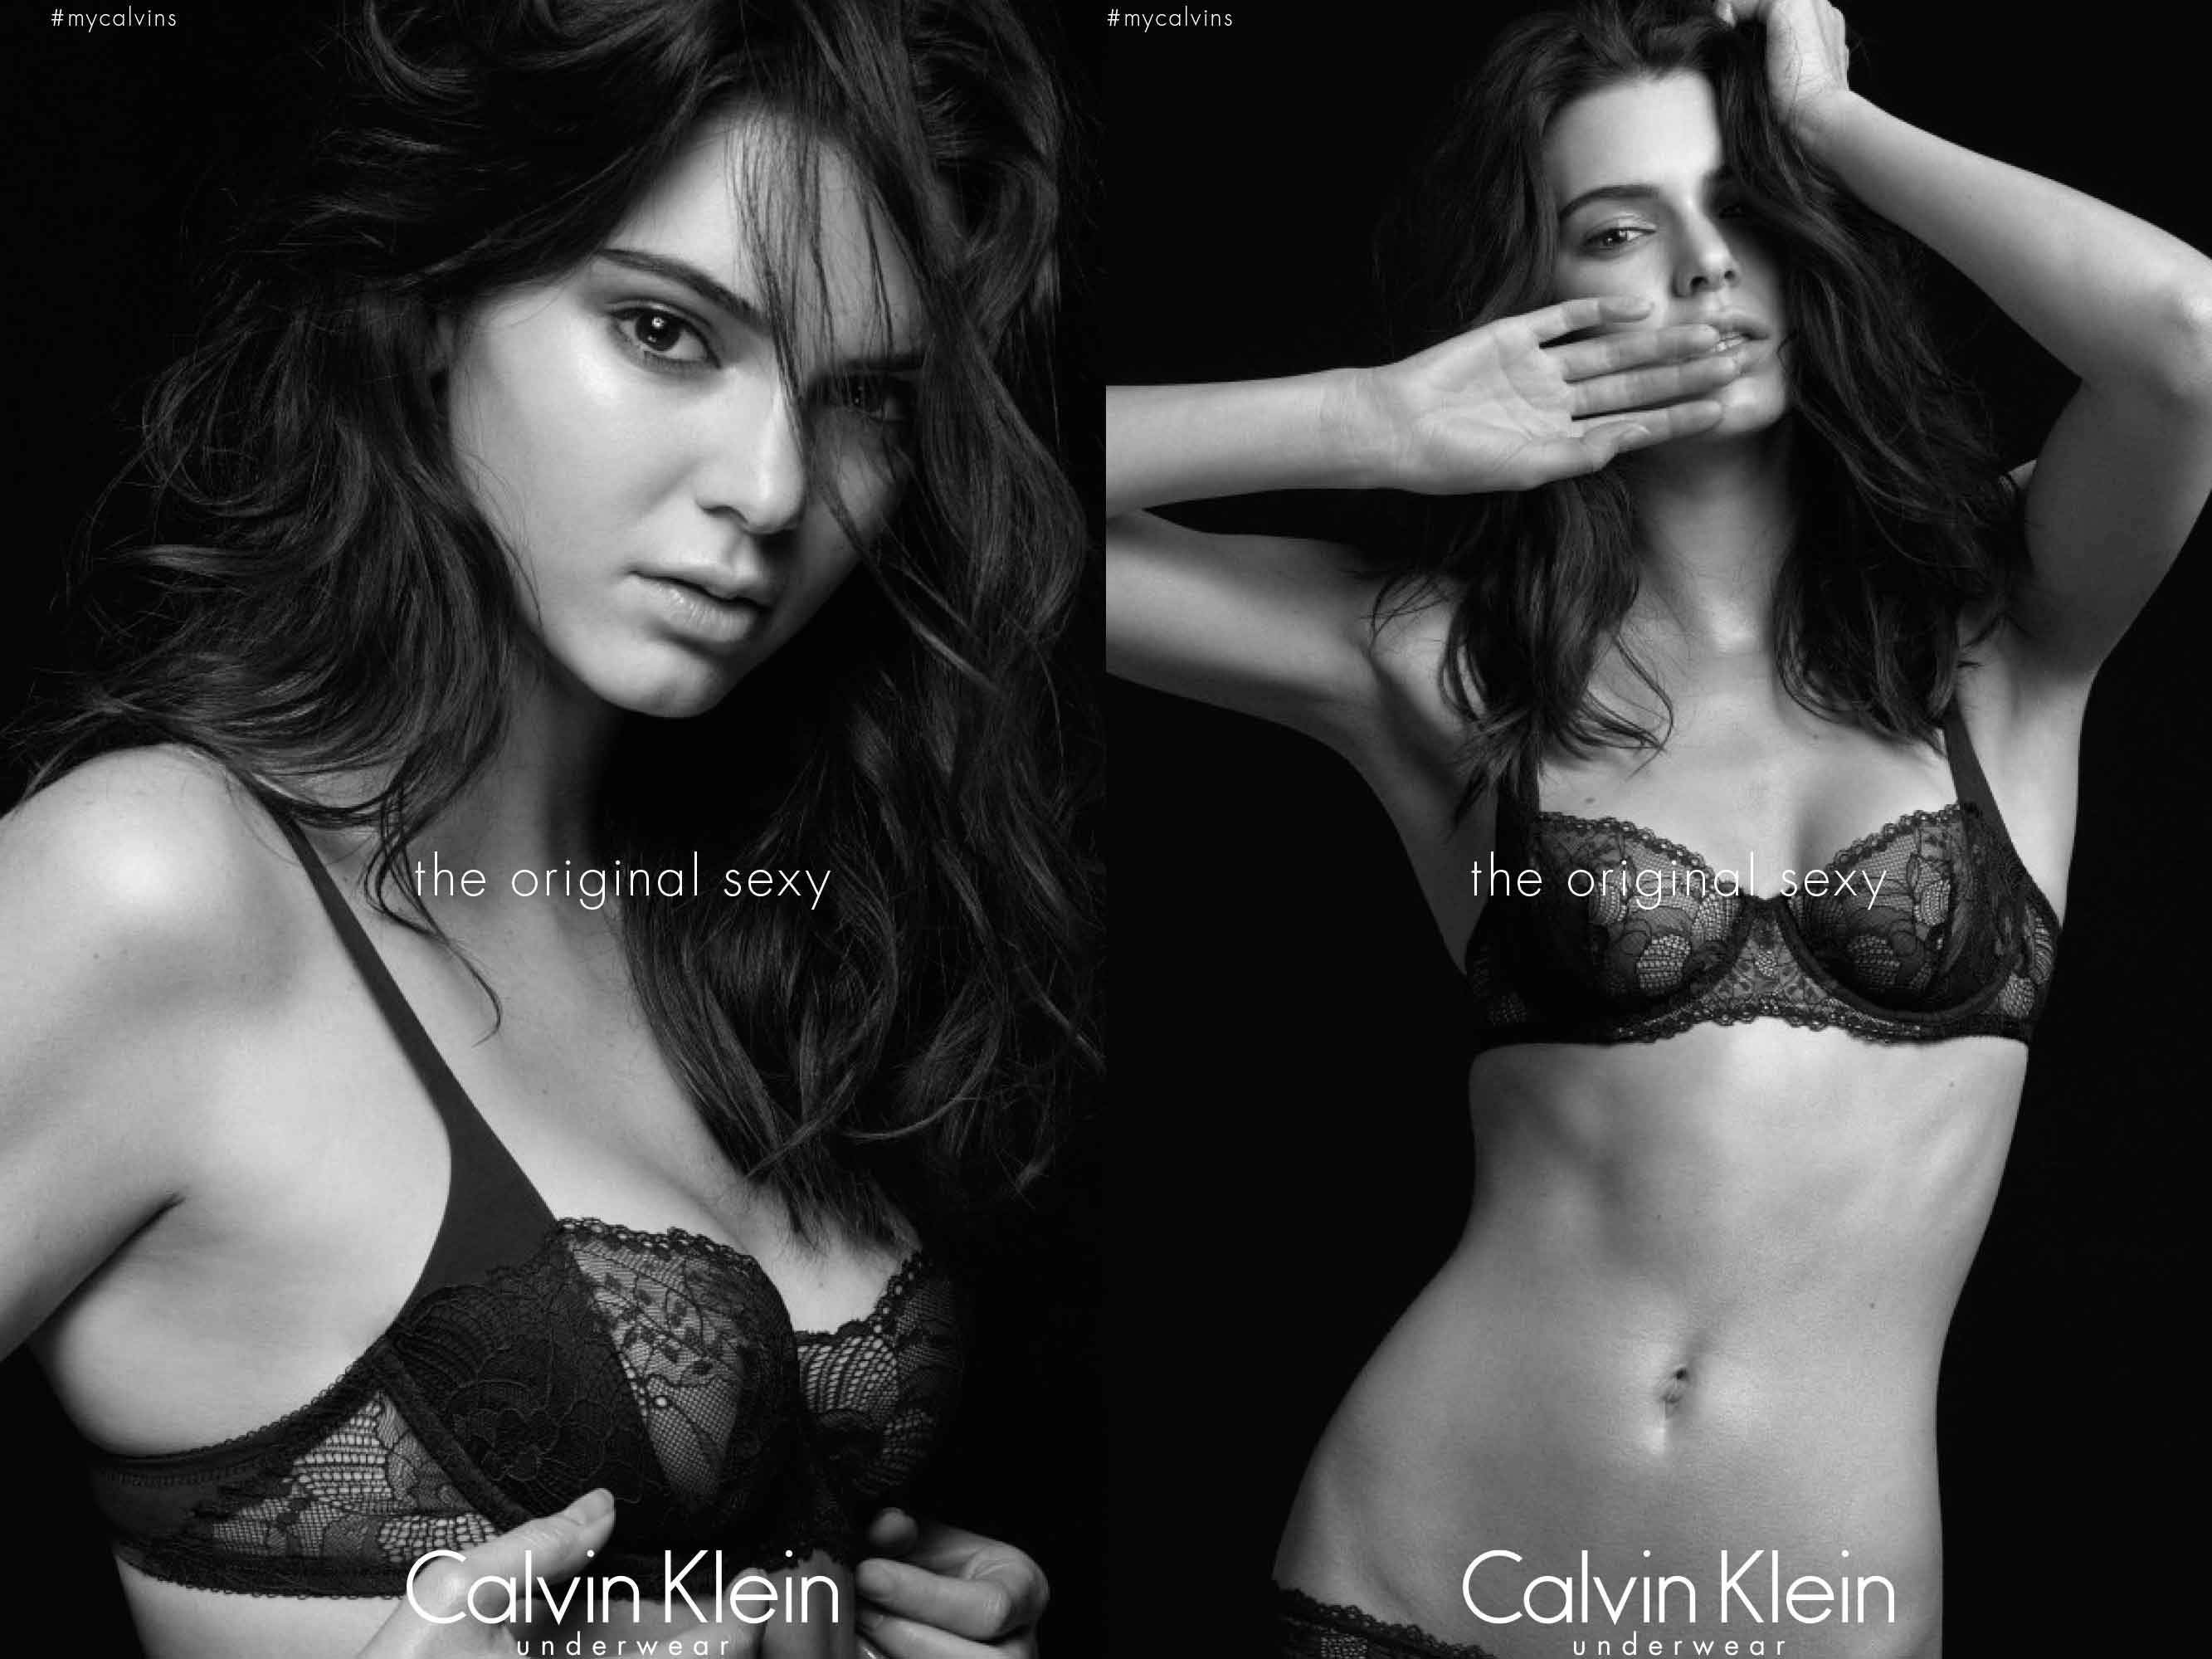 bb1c73e0a469 Kendall Jenner stars in 'The Original Sexy' Calvin Klein Underwear campaign  | The Independent